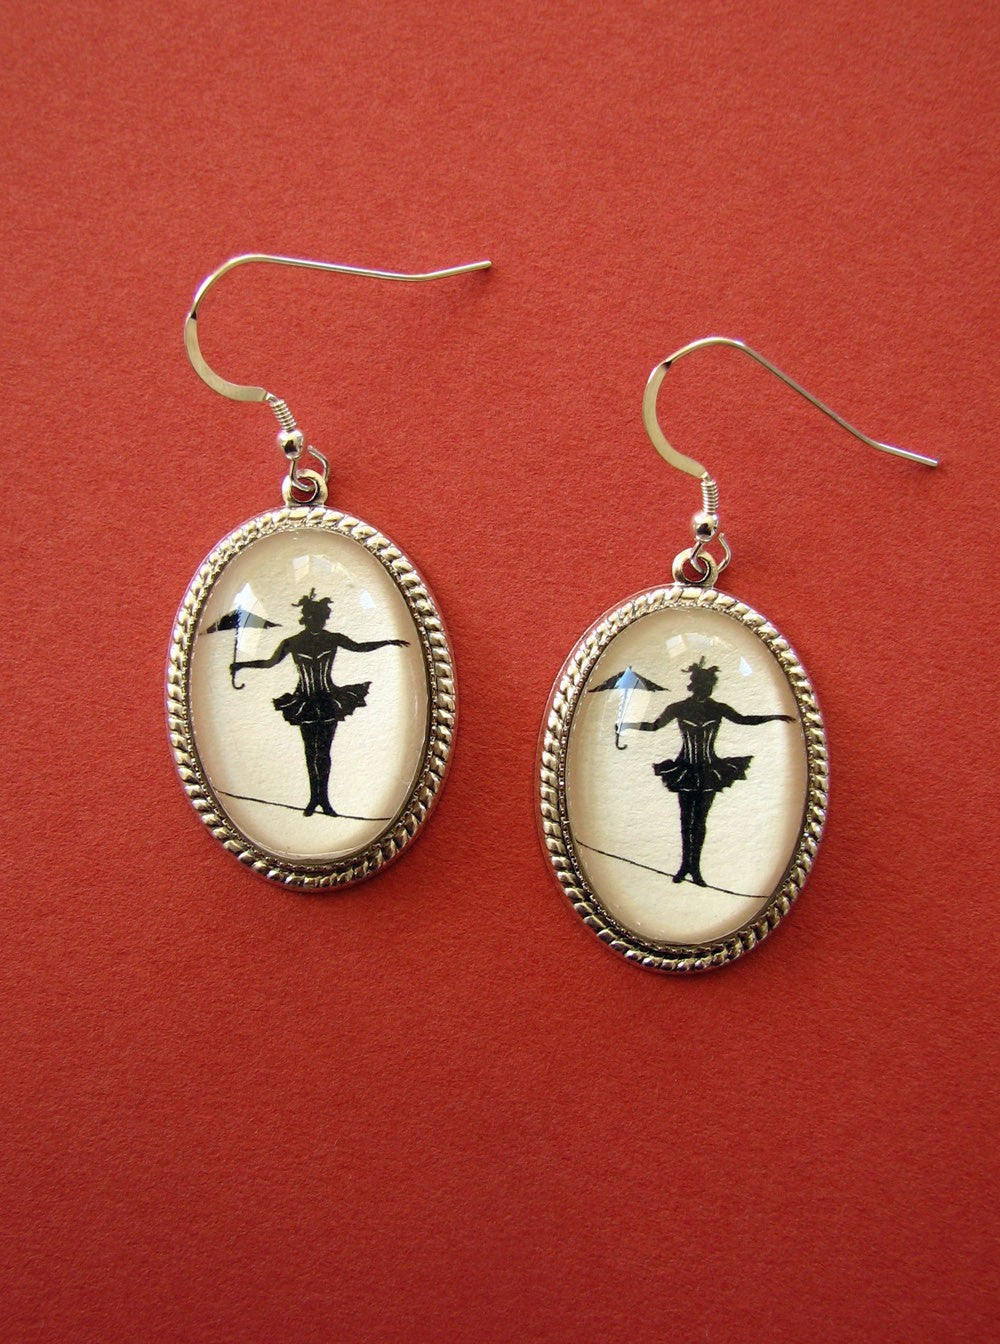 Elvira on a Tightrope Earrings